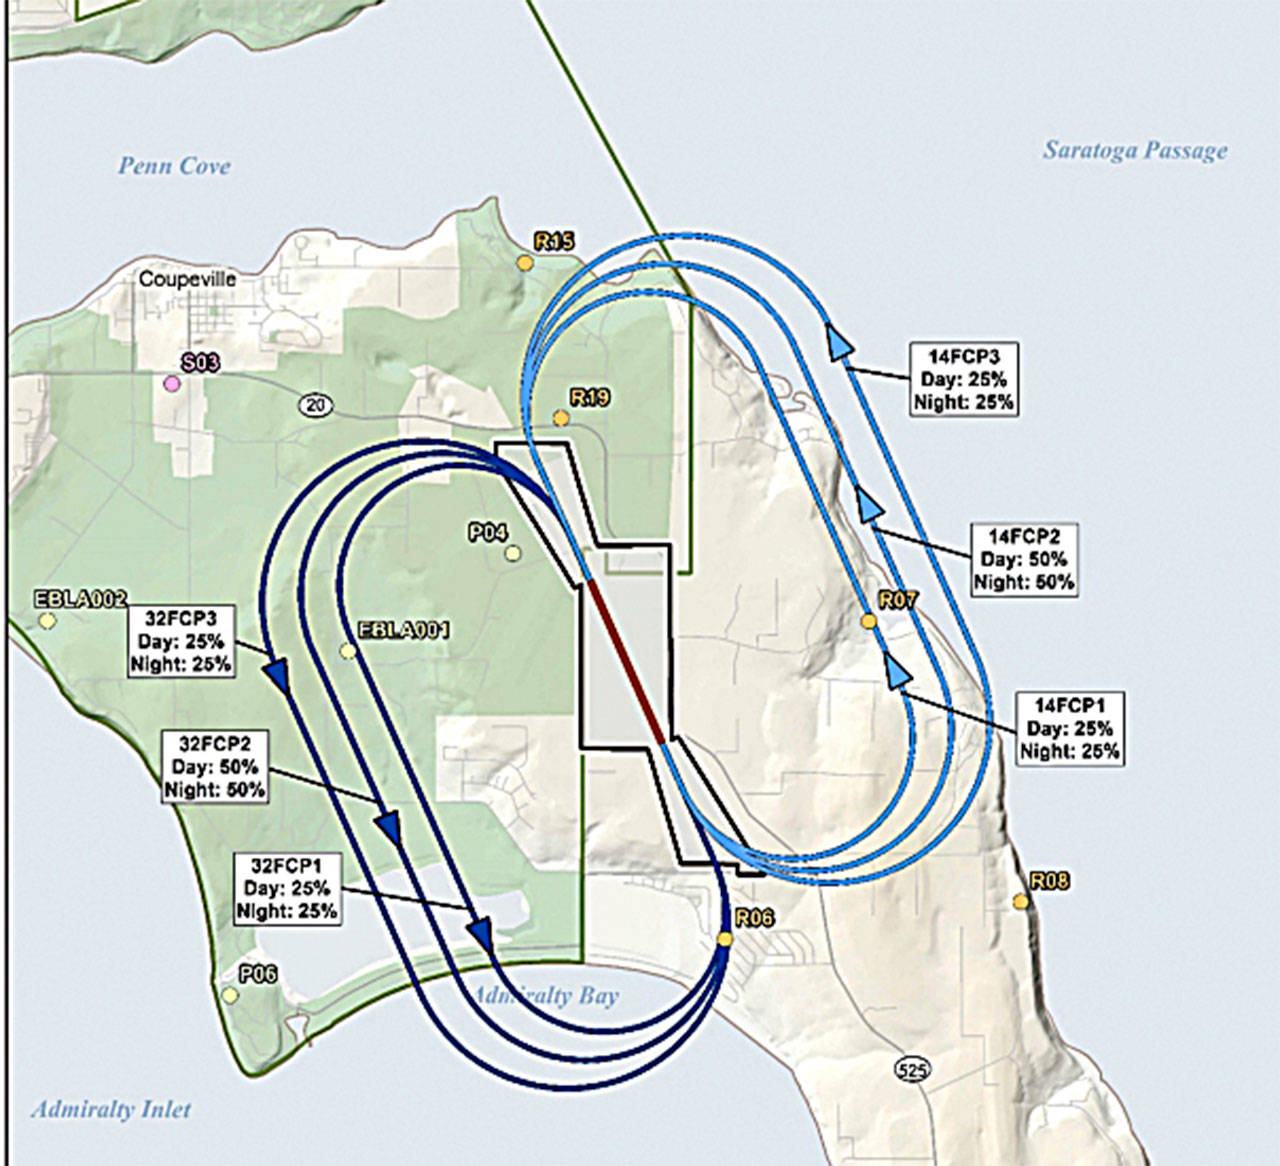 A diagram from the Environmental Impact Statement on EA-18G Growlers shows the flight track utilization percentages.